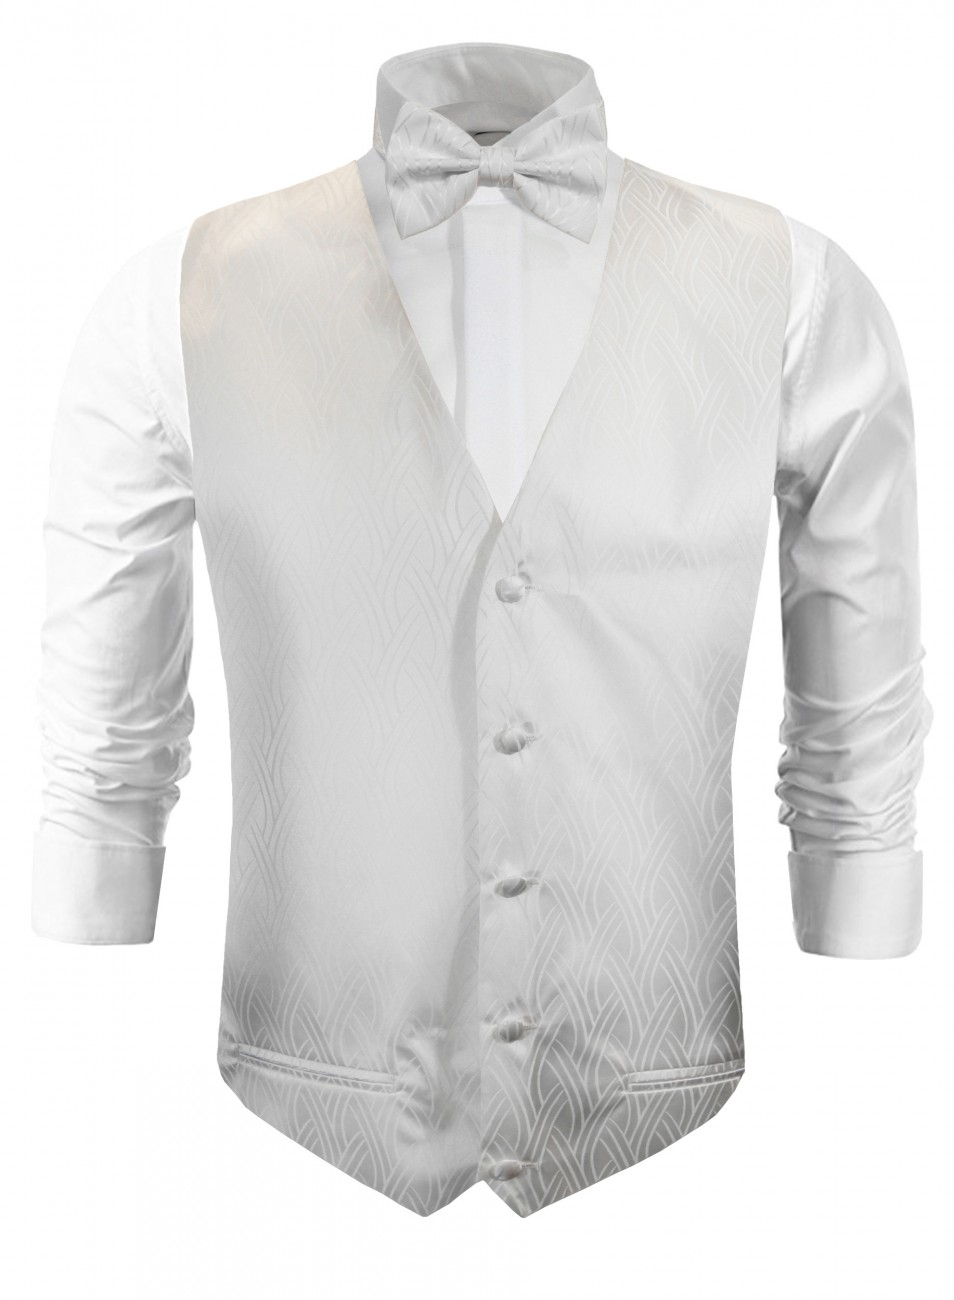 Wedding vest with bow tie ivory off white striped